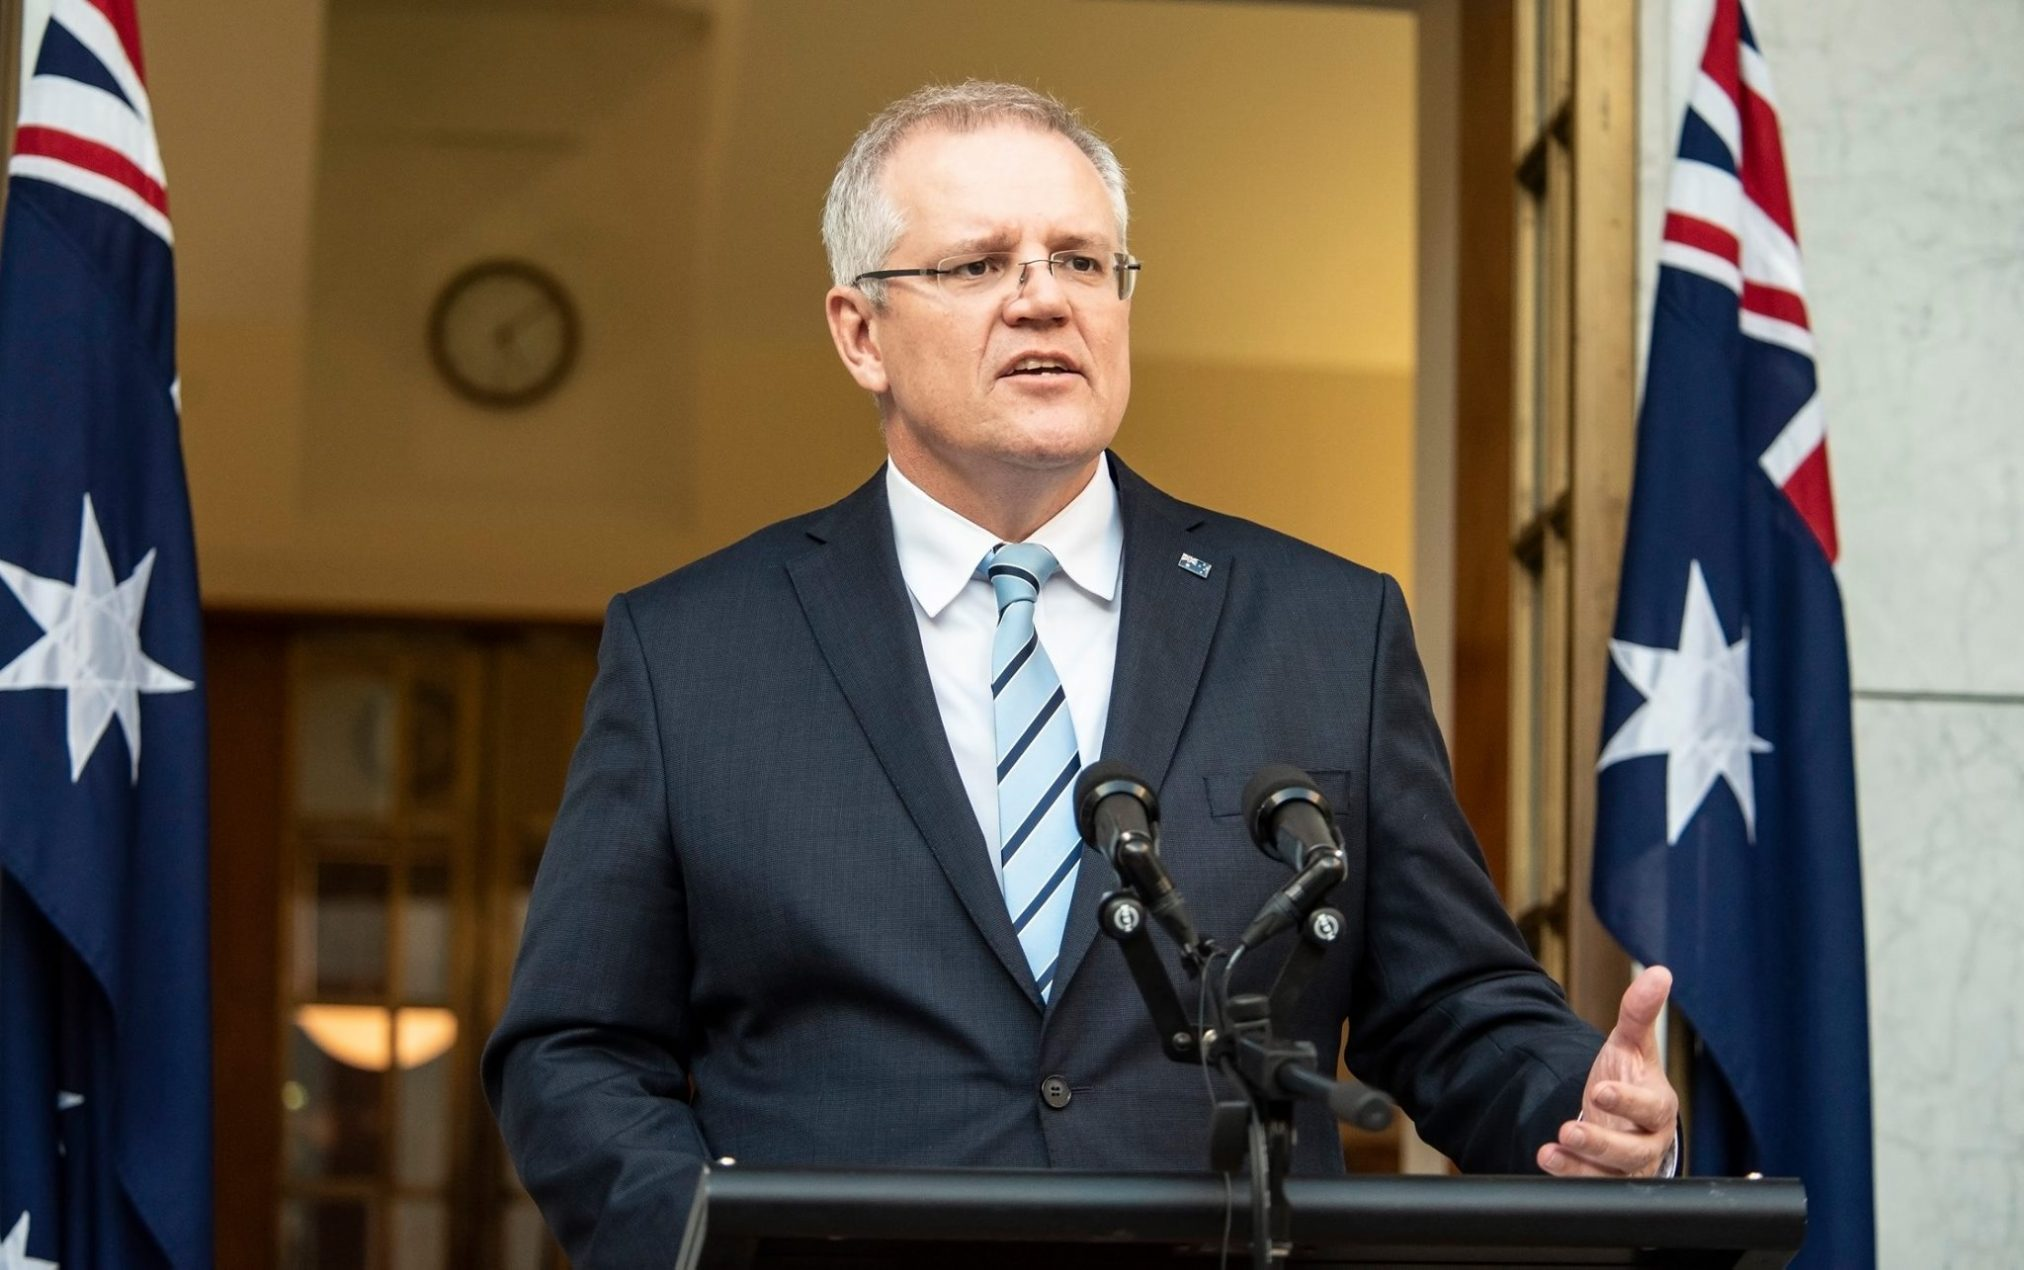 Health under Scott Morrison? | AJP